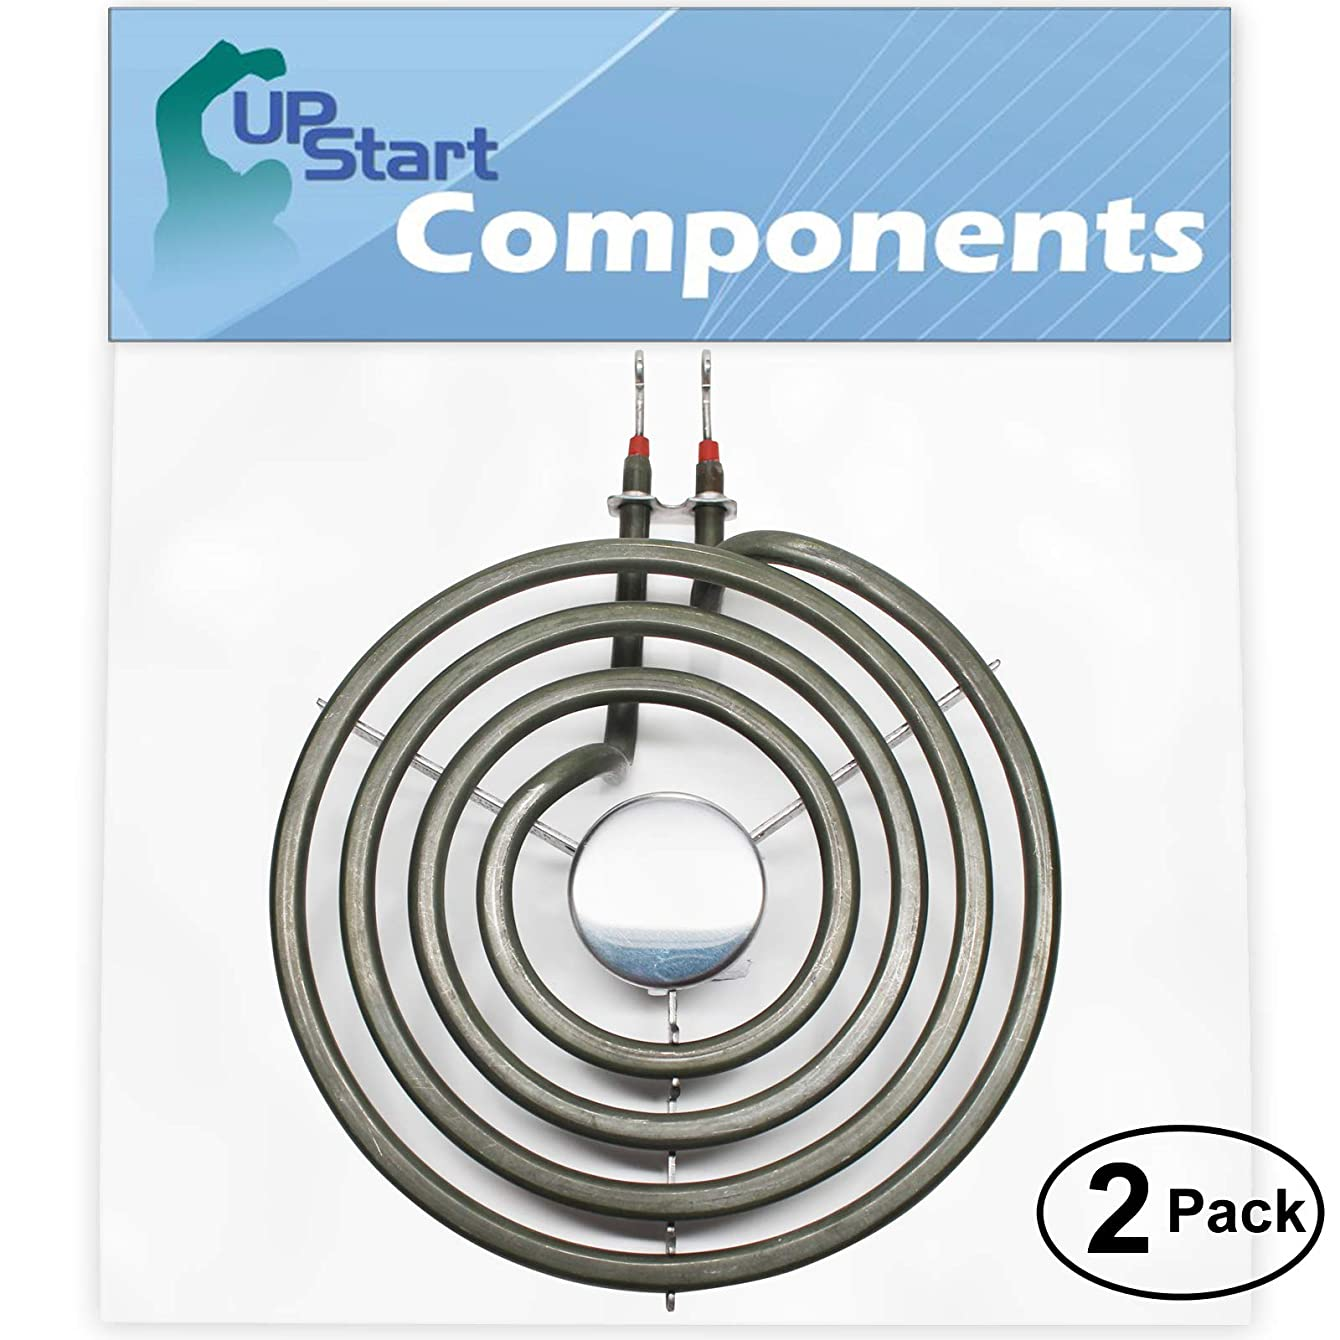 2-Pack Replacement Whirlpool RF379LXKQ1 6 inch 4 Turns Surface Burner Element - Compatible Whirlpool 660532 Heating Element for Range, Stove & Cooktop